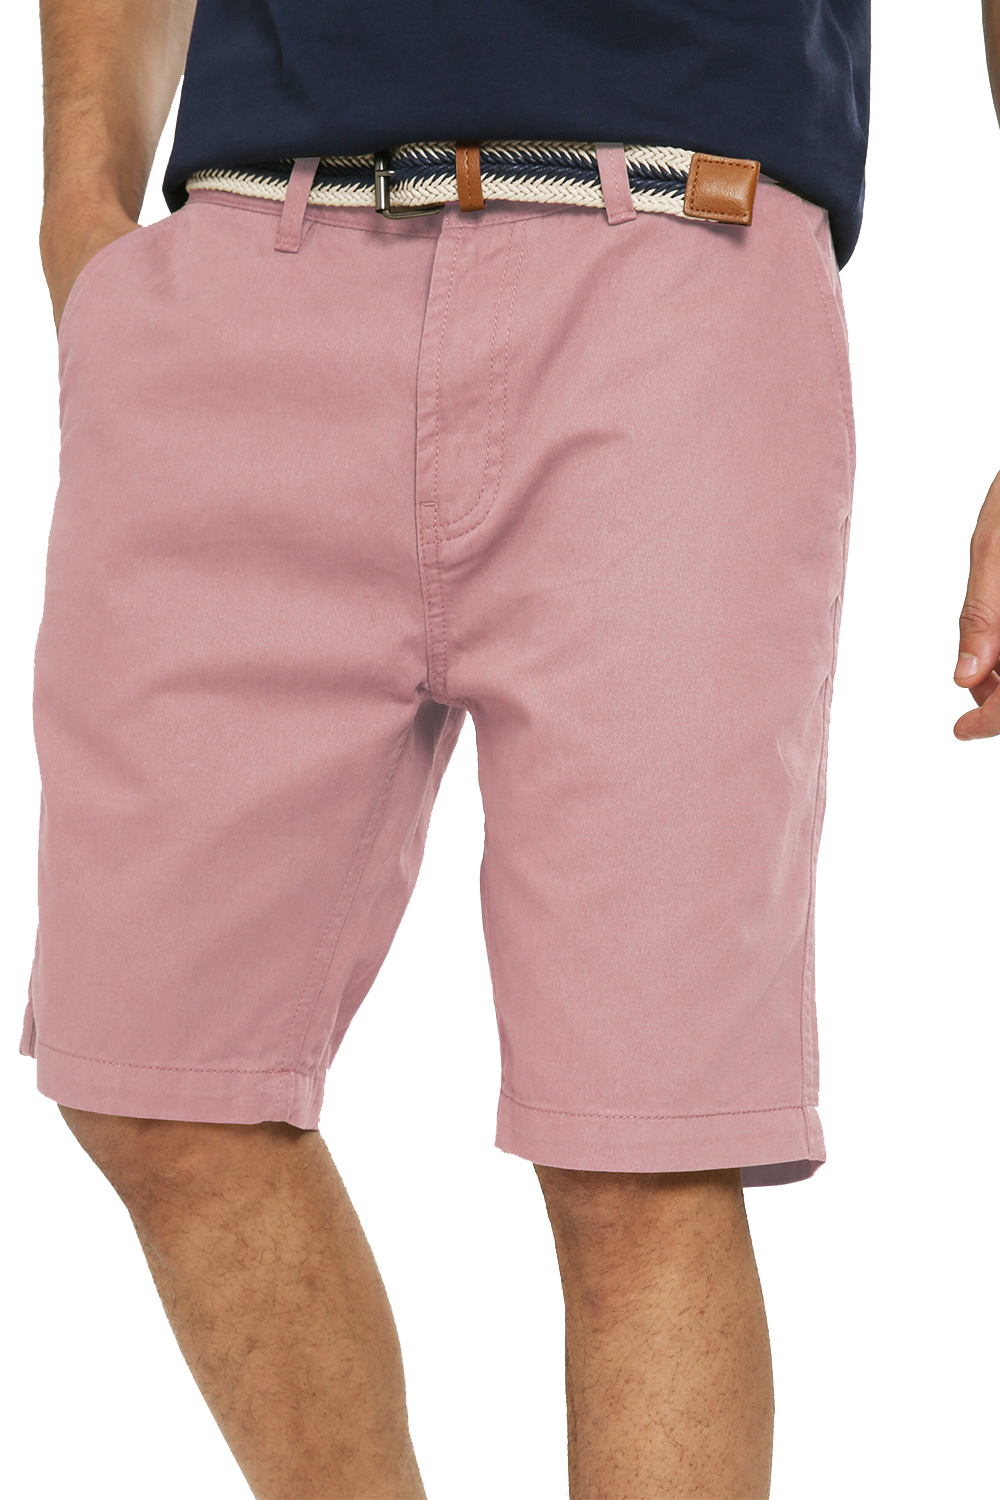 Threadbare-Mens-Slim-Fit-Belted-Chino-Shorts-Summer-Casual-Cotton-Smart-Bottoms thumbnail 39